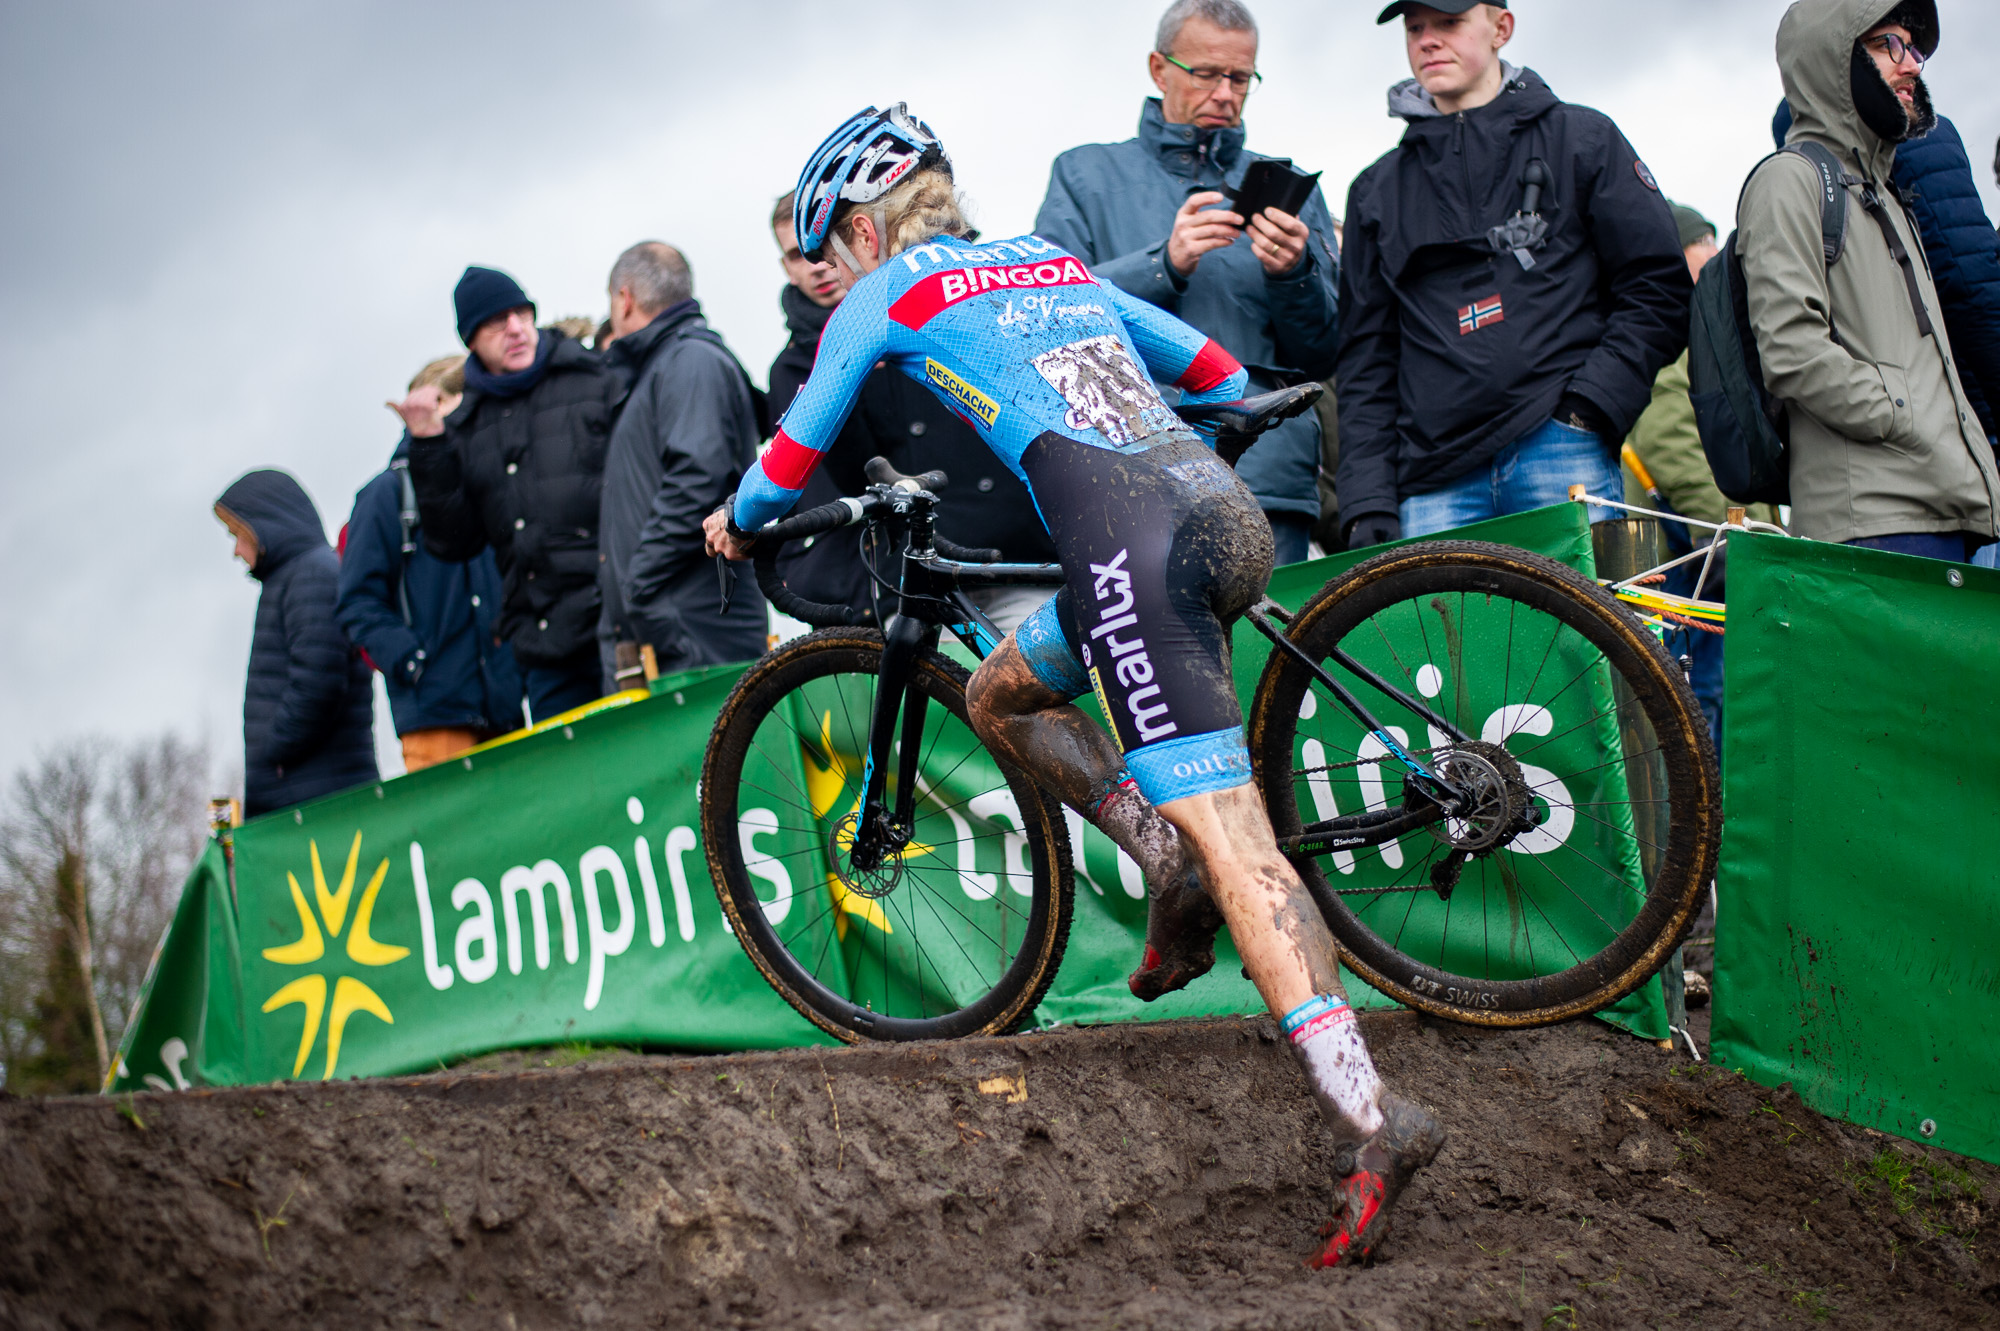 Laura Verdonschot on the muddy steps in Hoogstraten